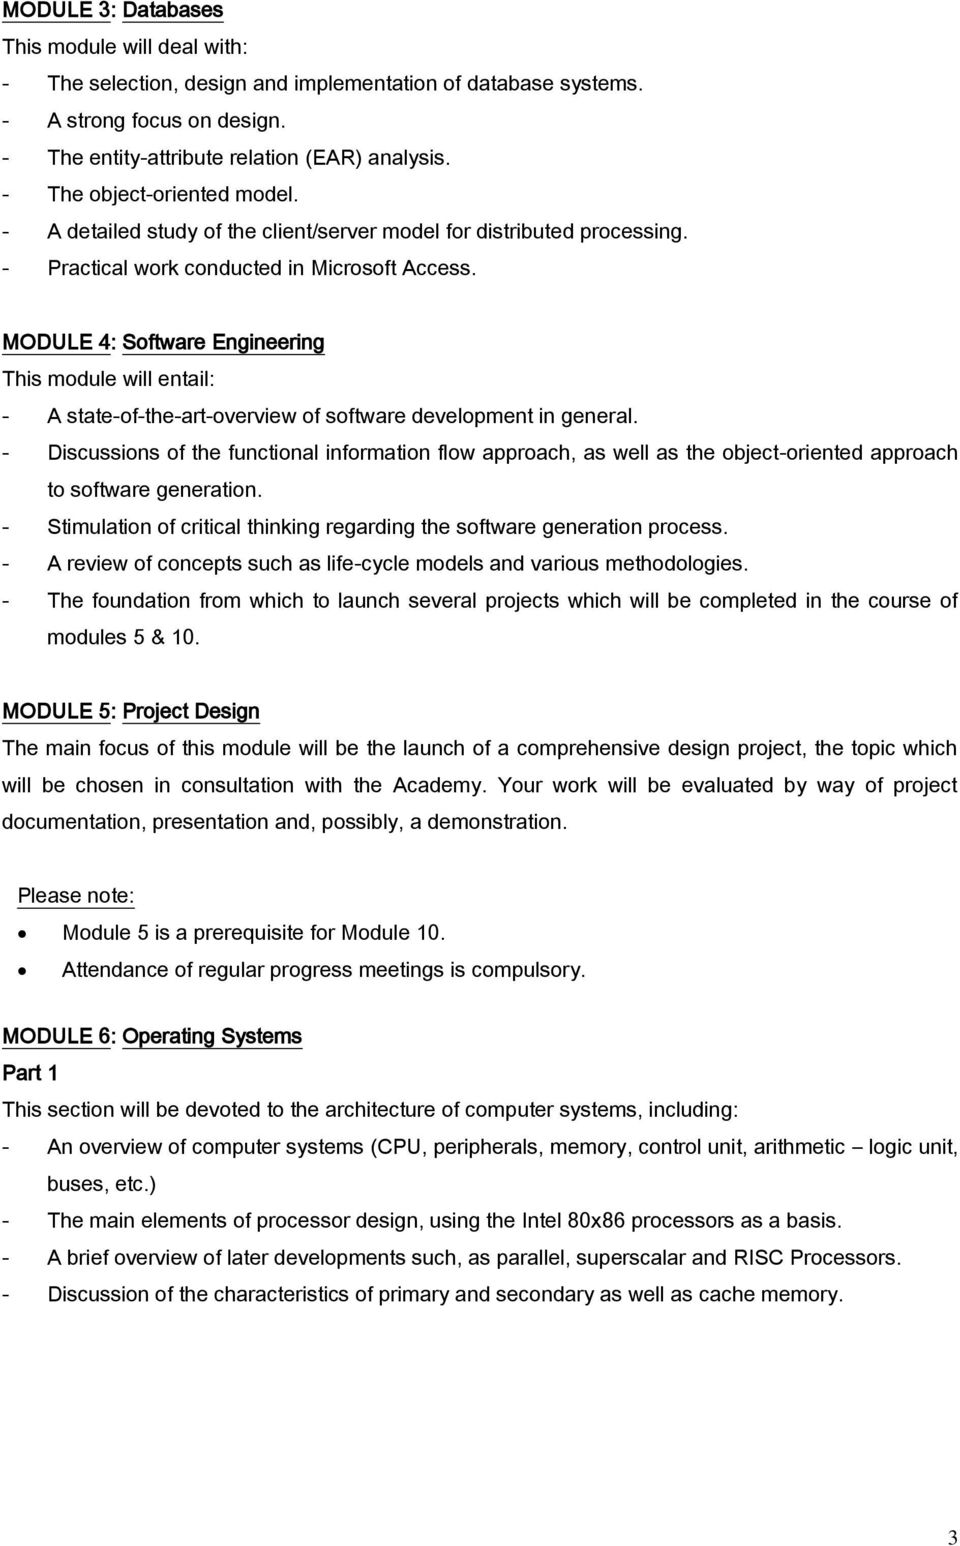 MODULE 4: Software Engineering This module will entail: - A state-of-the-art-overview of software development in general.